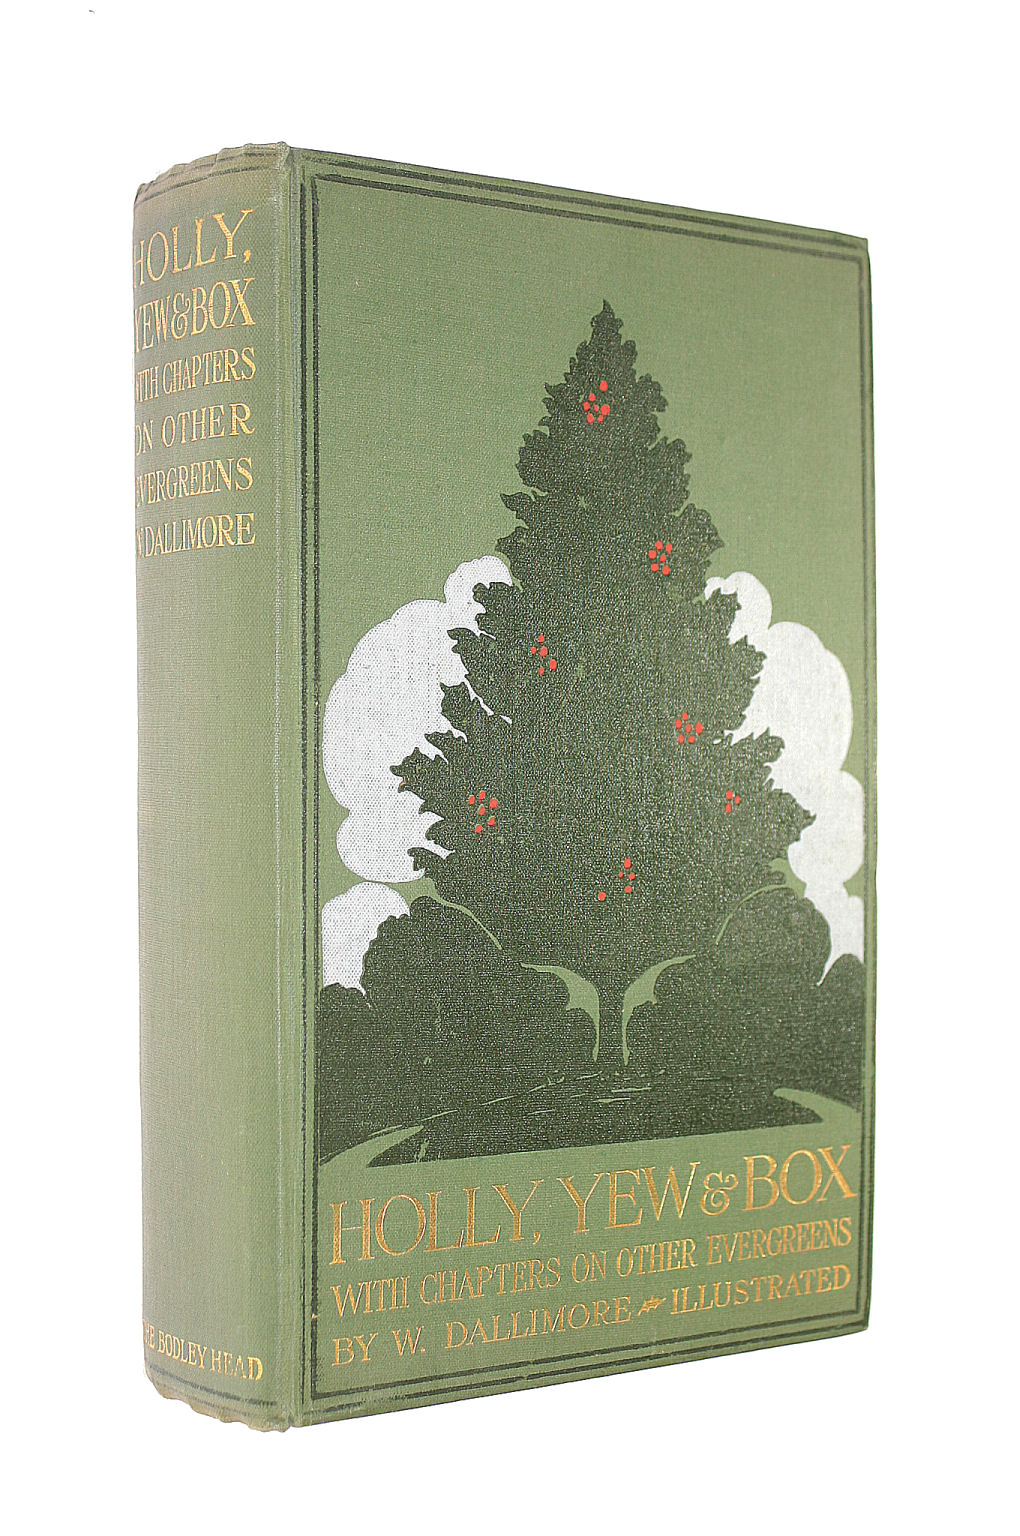 Image for Holly, yew & box,: With notes on other evergreens,